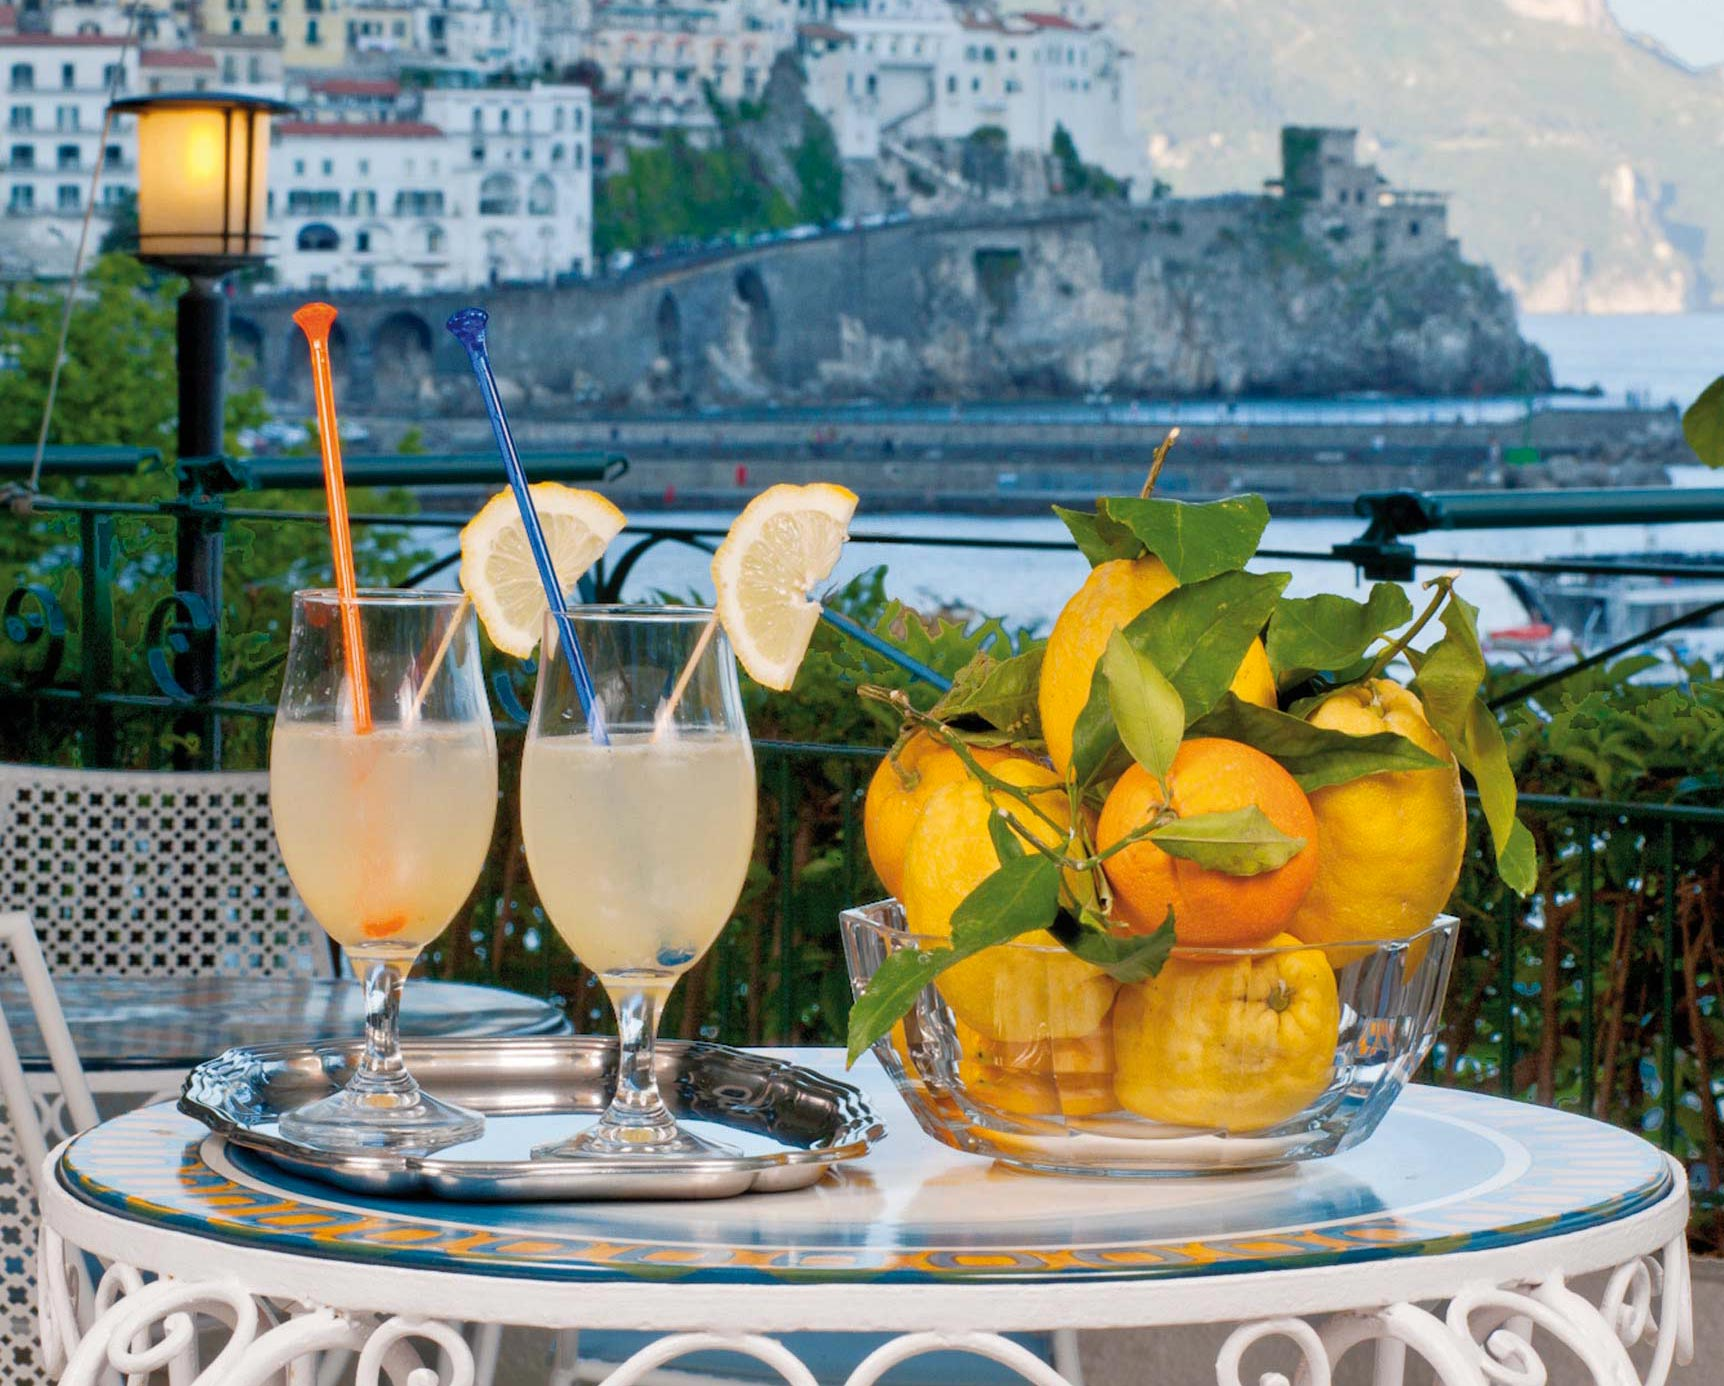 The magic of an aperitif with a view in Amalfi